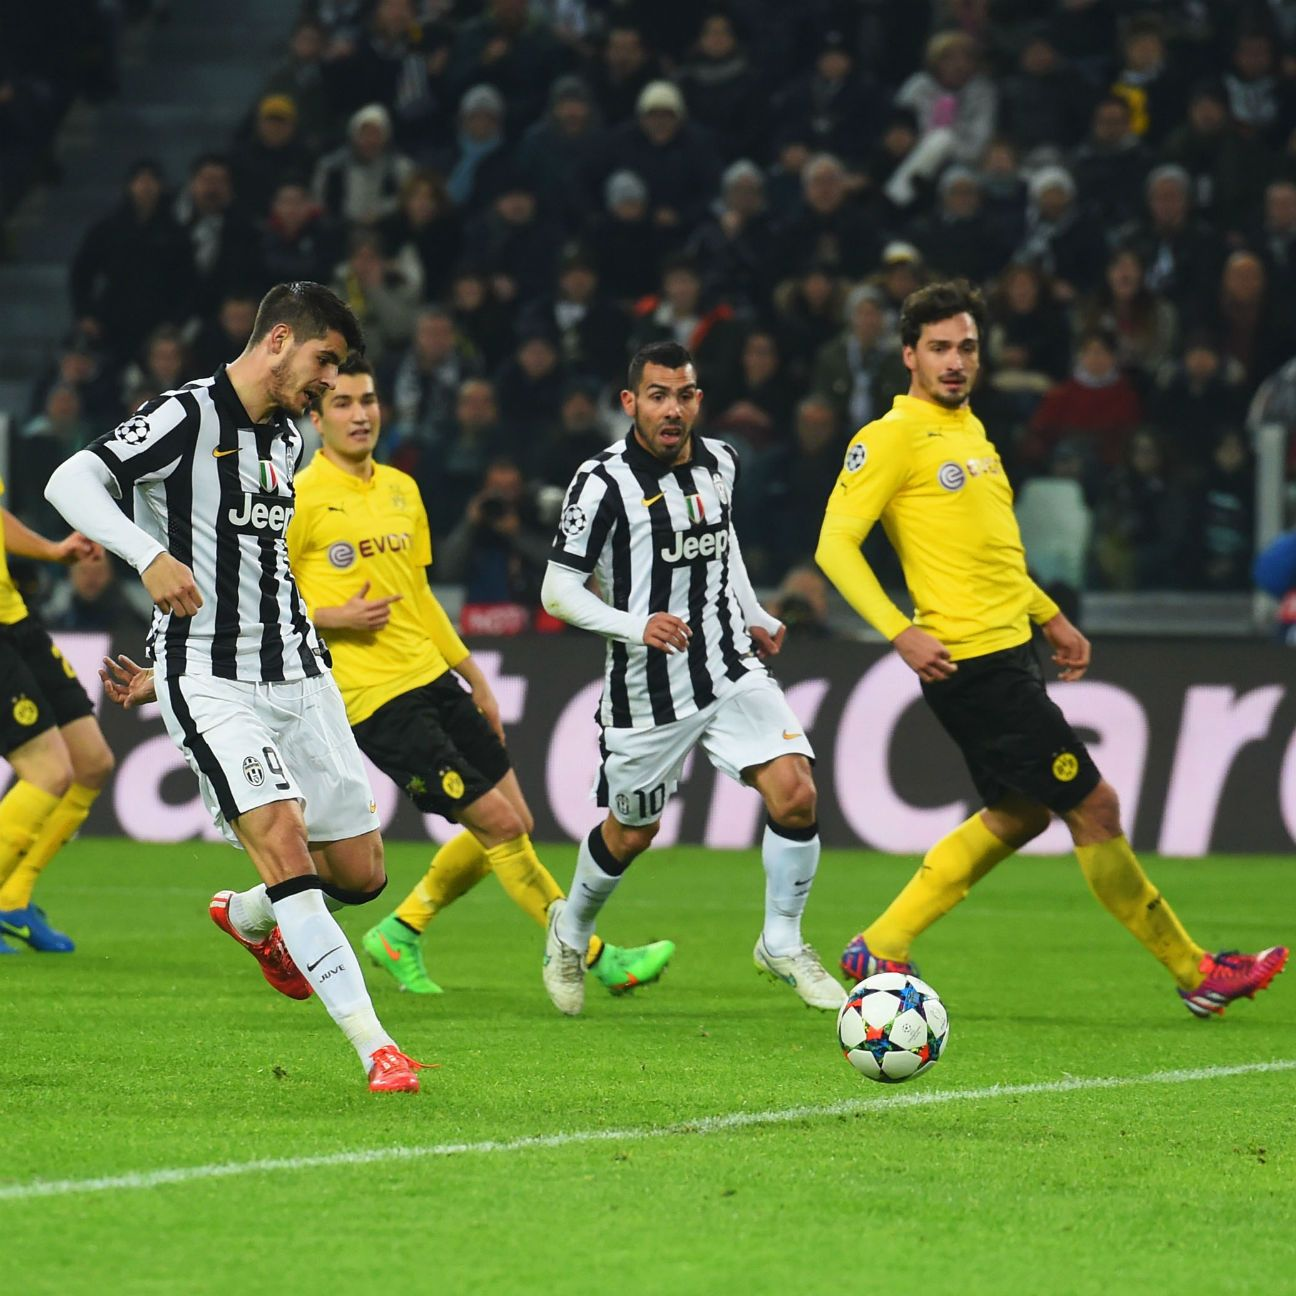 Overcoming Juventus could lift Borussia Dortmund's otherwise disappointing season - ESPN FC